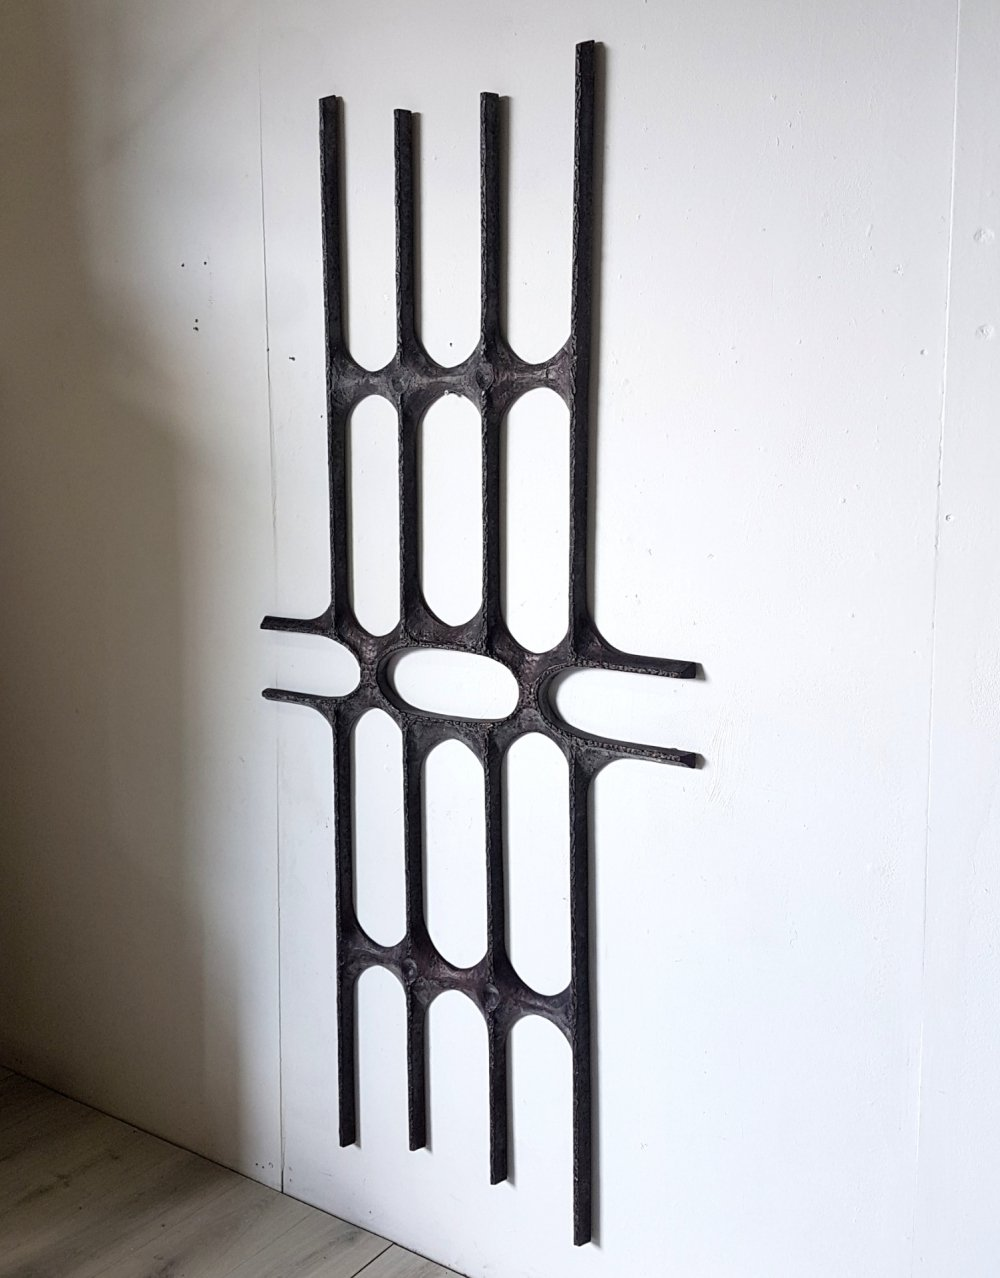 Brutalist abstract decorative wall sculpture, 1970s